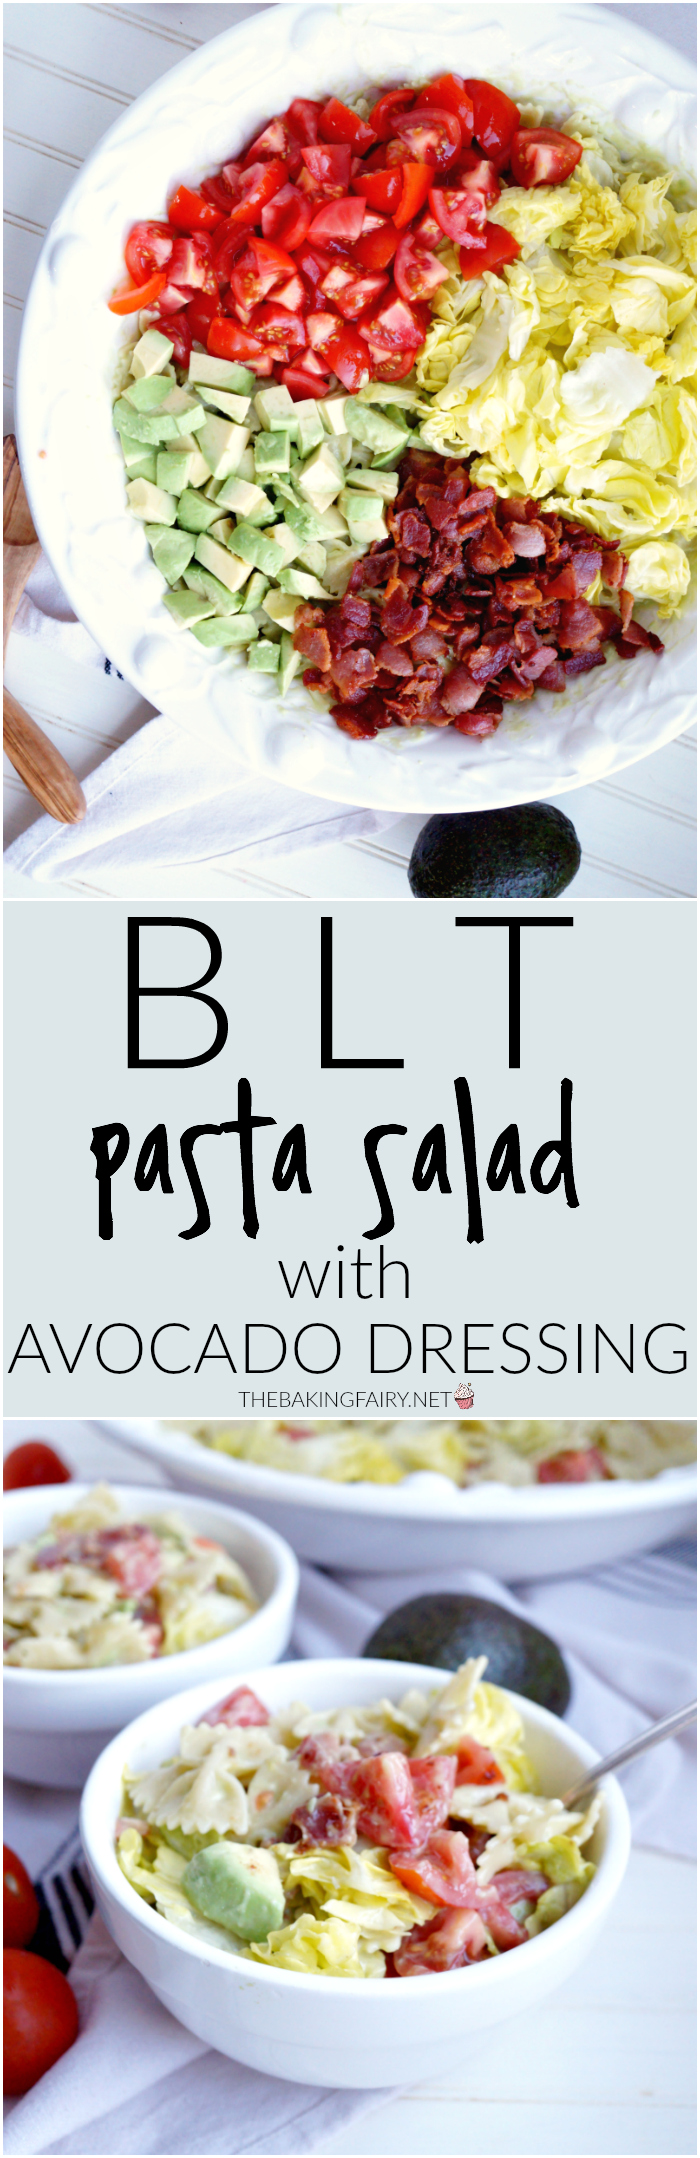 BLT pasta salad with avocado dressing   The Baking Fairy